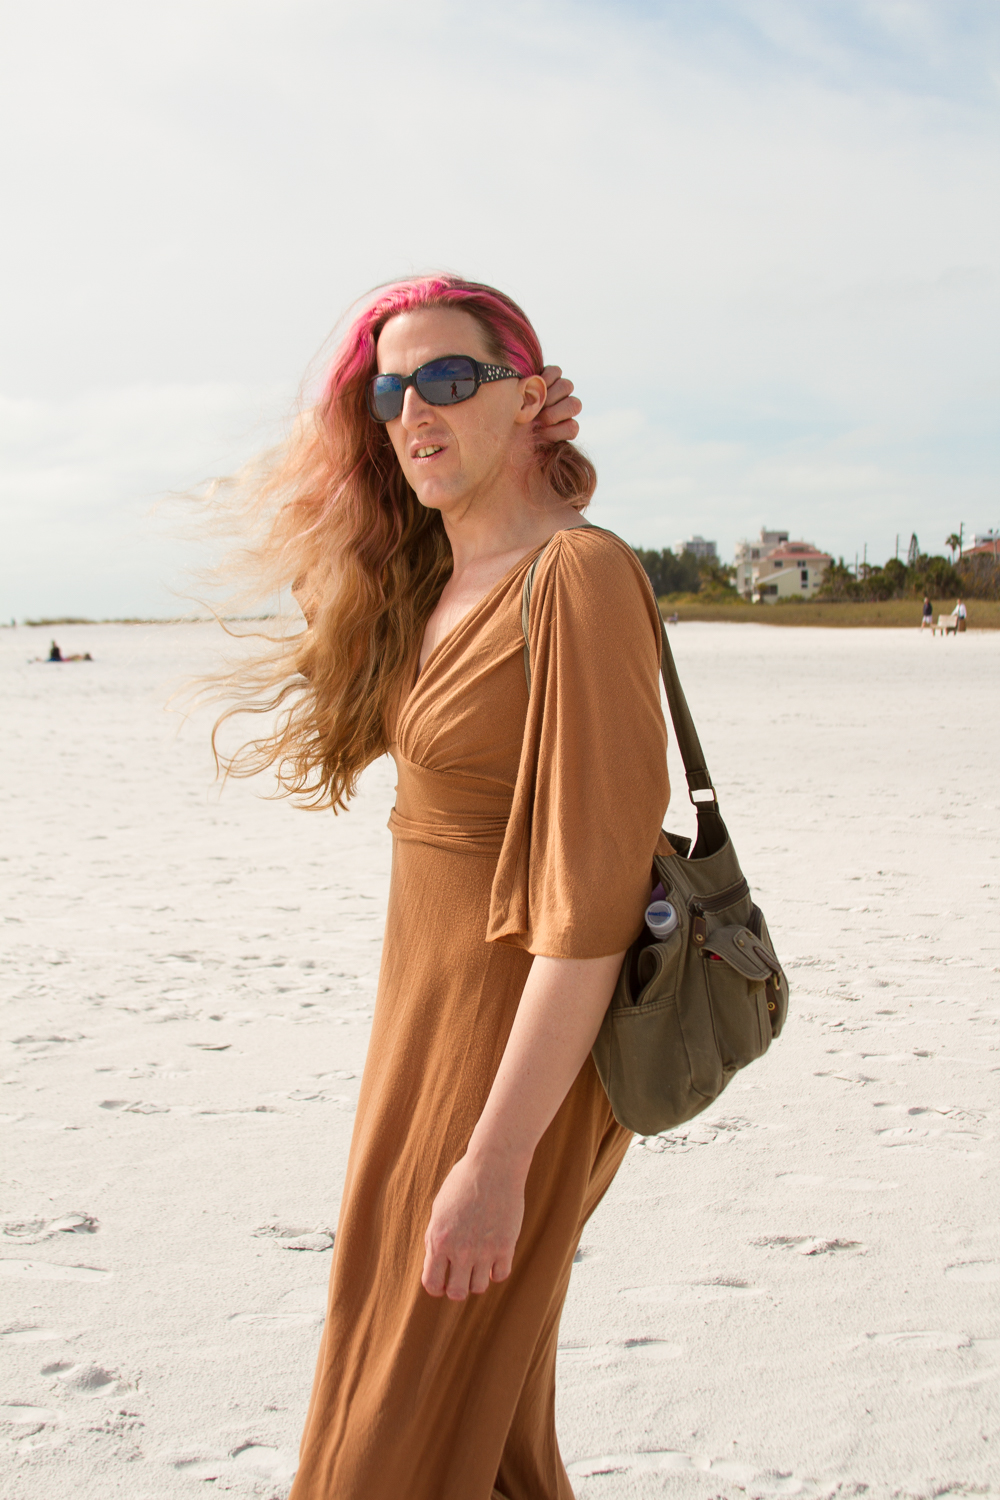 Lorelei, on the beach / 2013